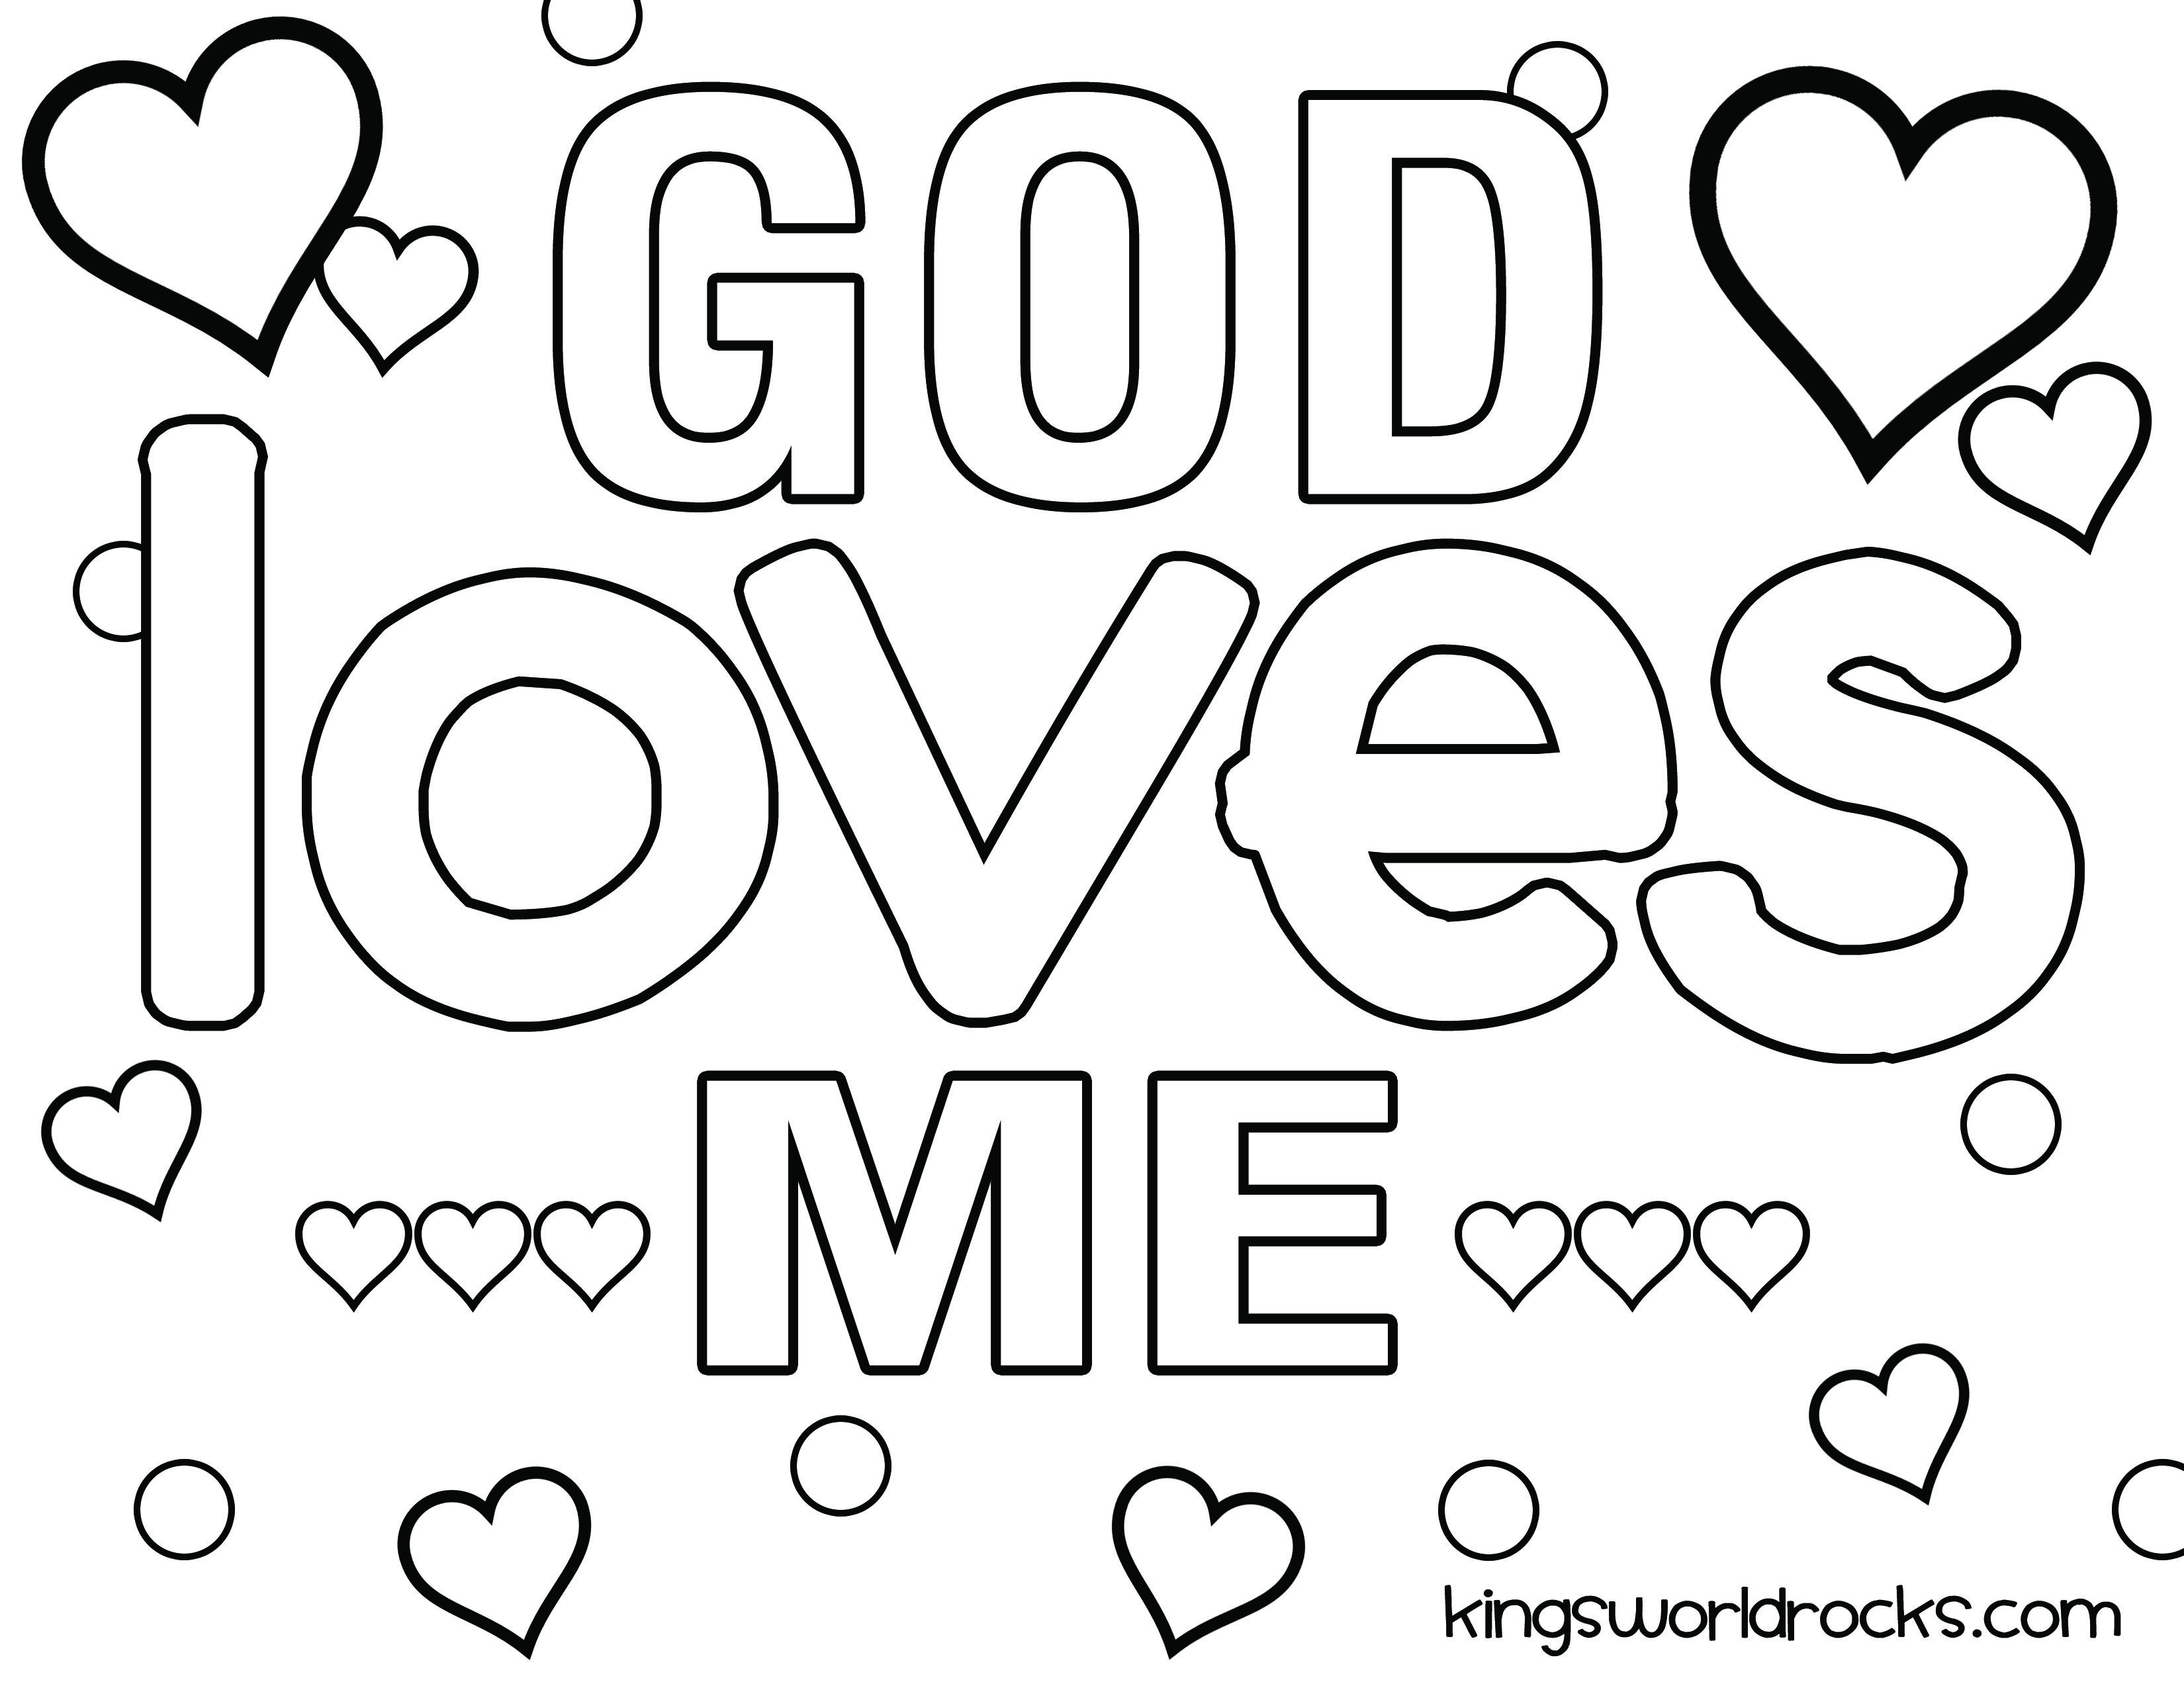 God Loves Me Coloring Page Sunday School Coloring Pages School Coloring Pages Sunday School Valentines